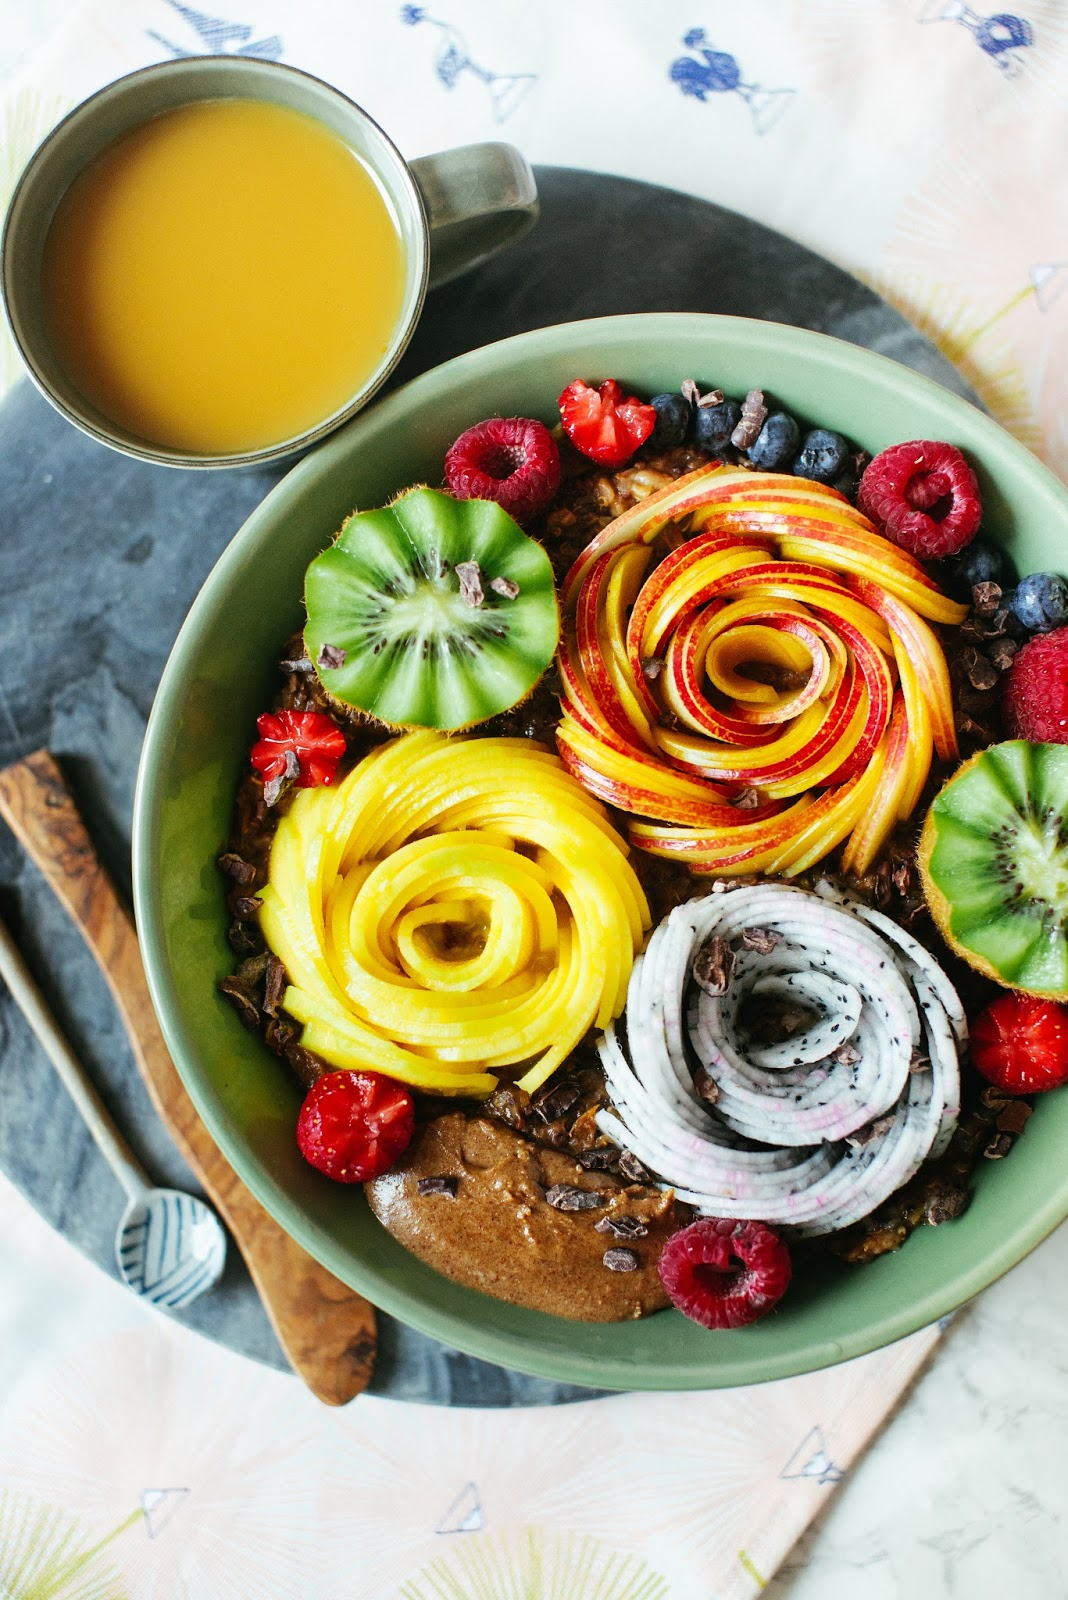 Black Rice Pudding with Fruits